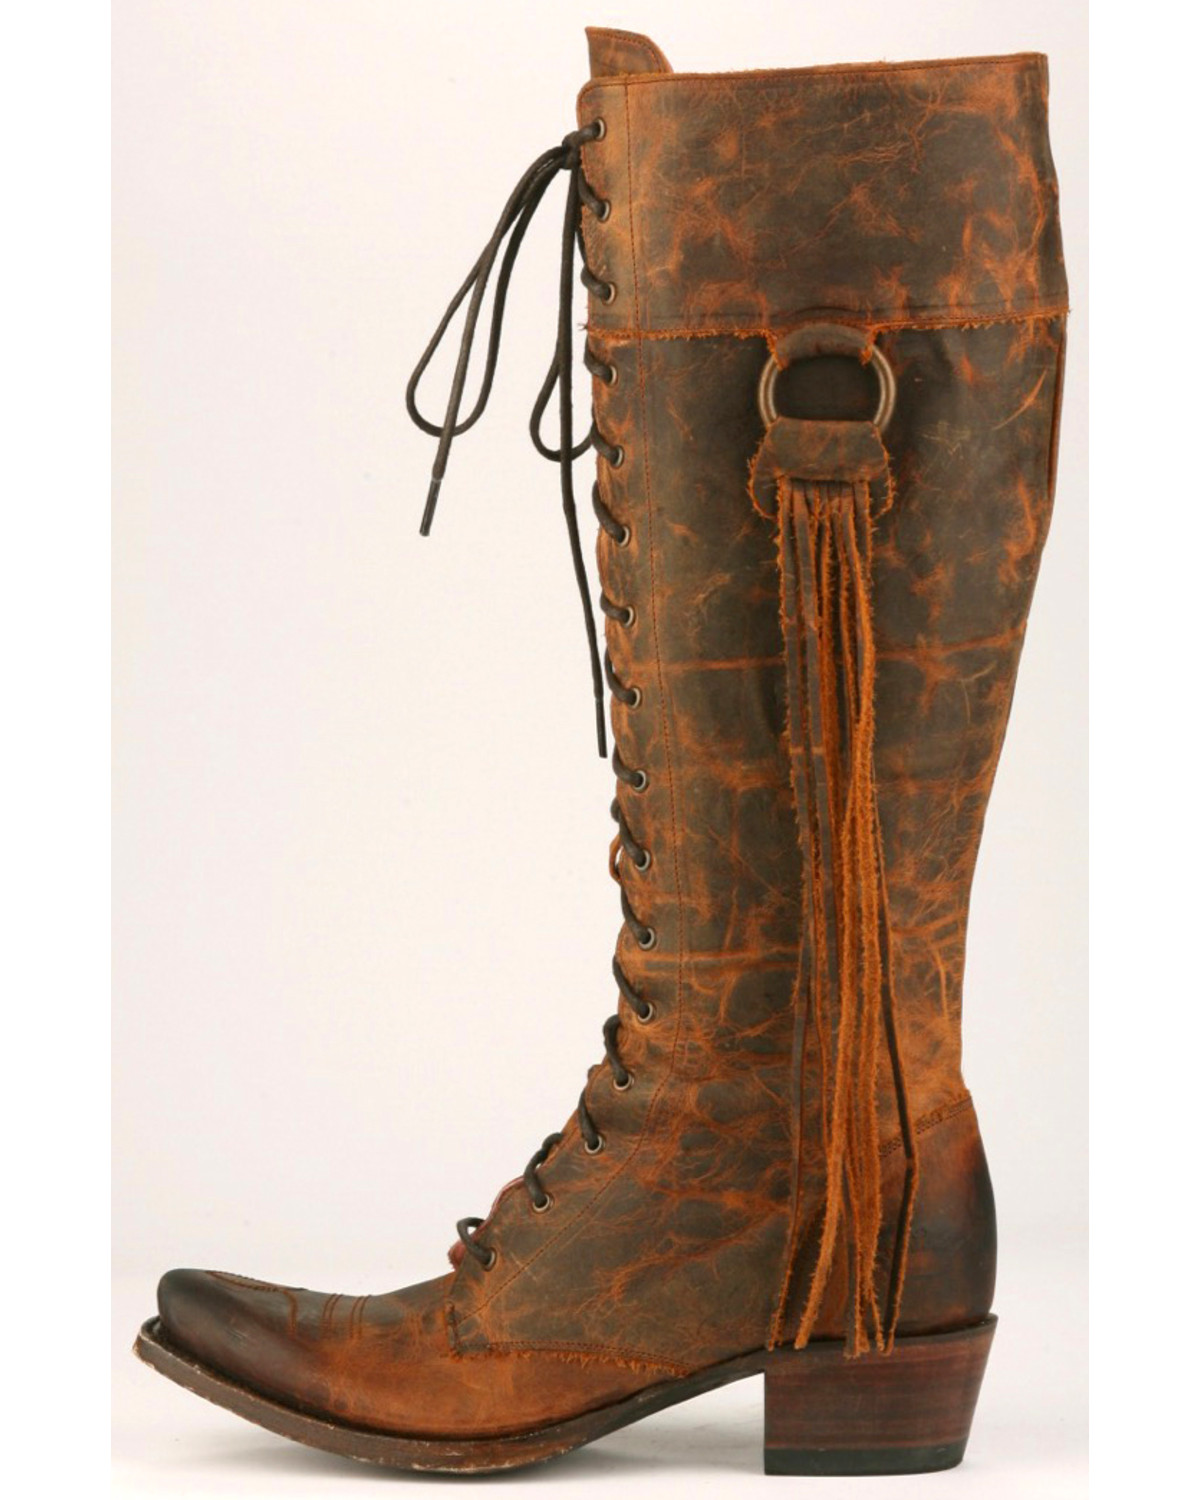 Junk Gypsy by Lane Women's Trailblazer Western Boots | Boot Barn